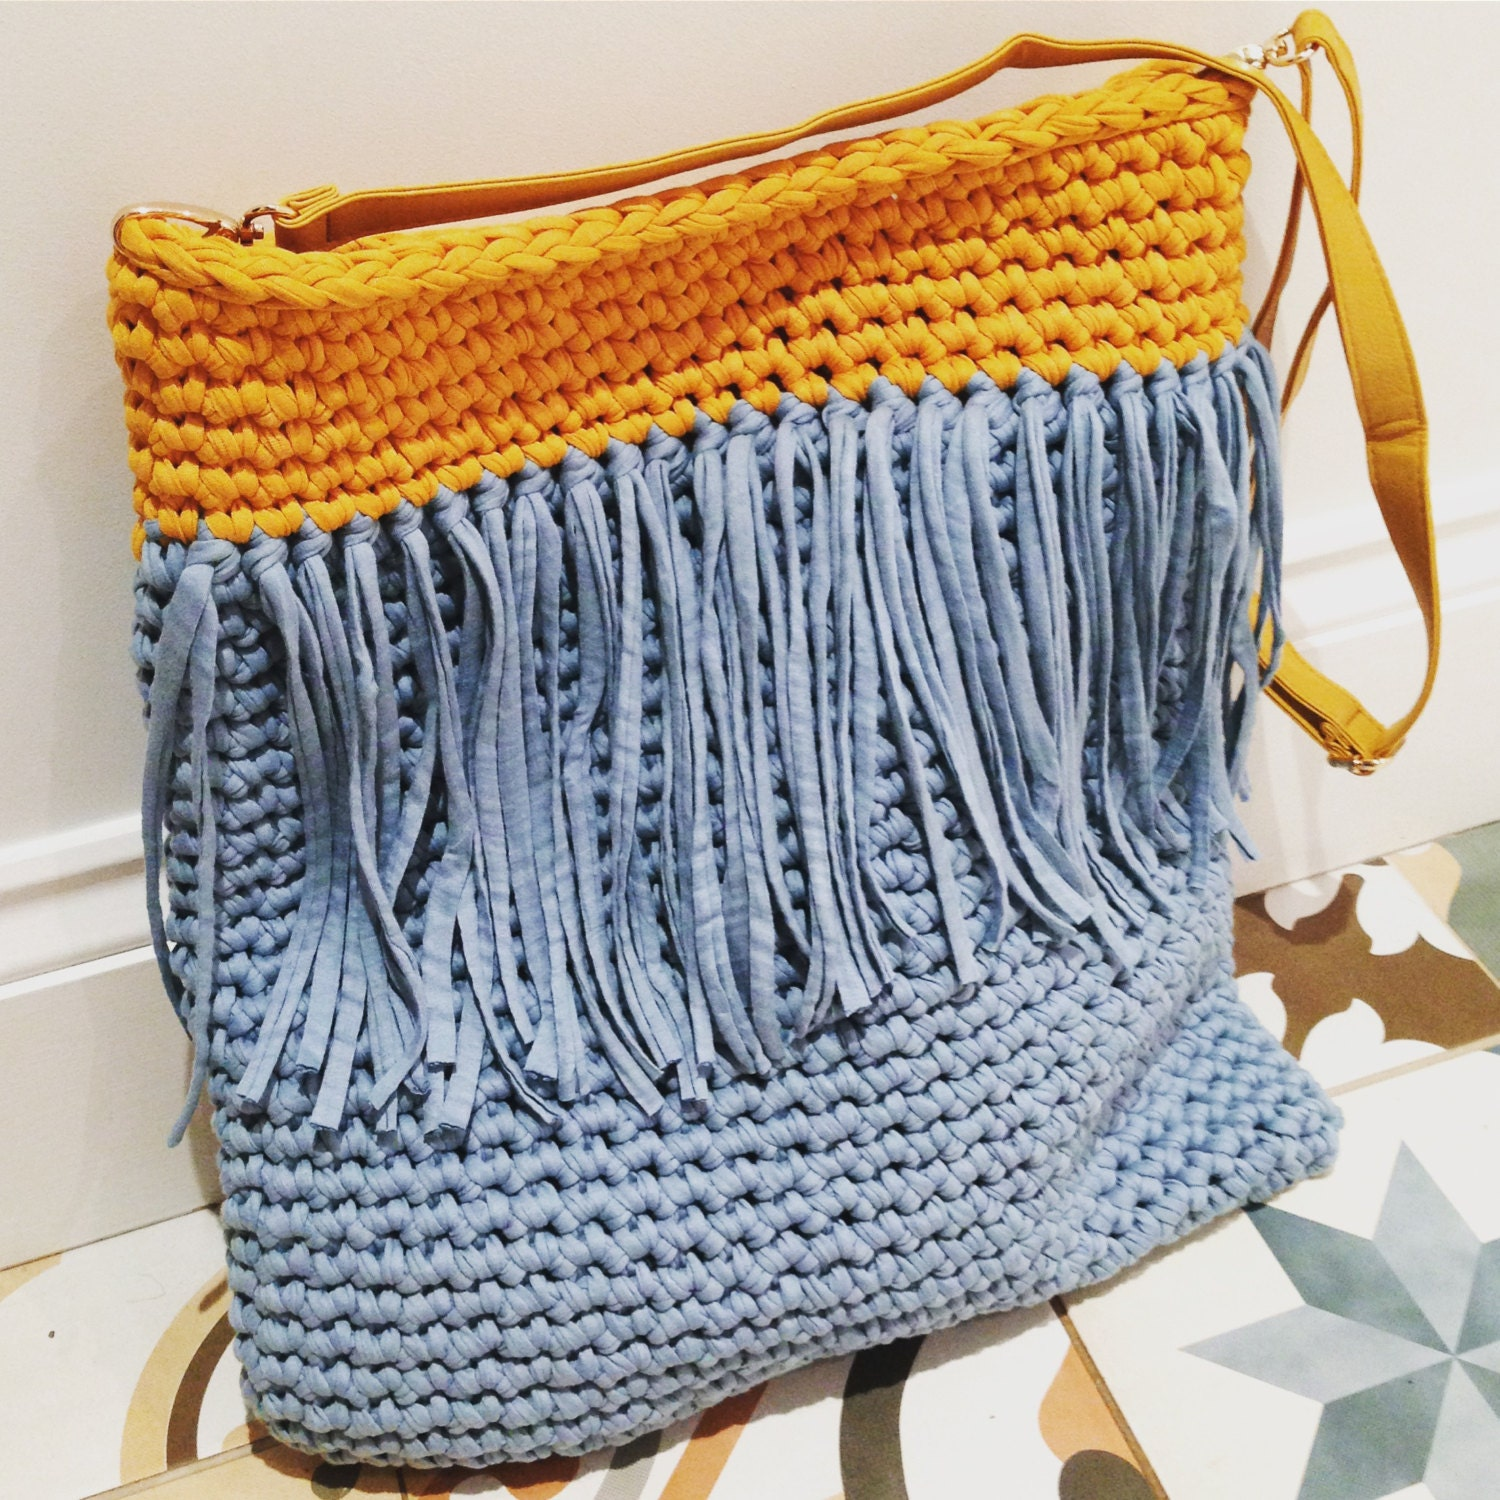 Crochet Patterns For T Shirt Yarn : Tassel Tote T-shirt Yarn Crochet Bag Pattern